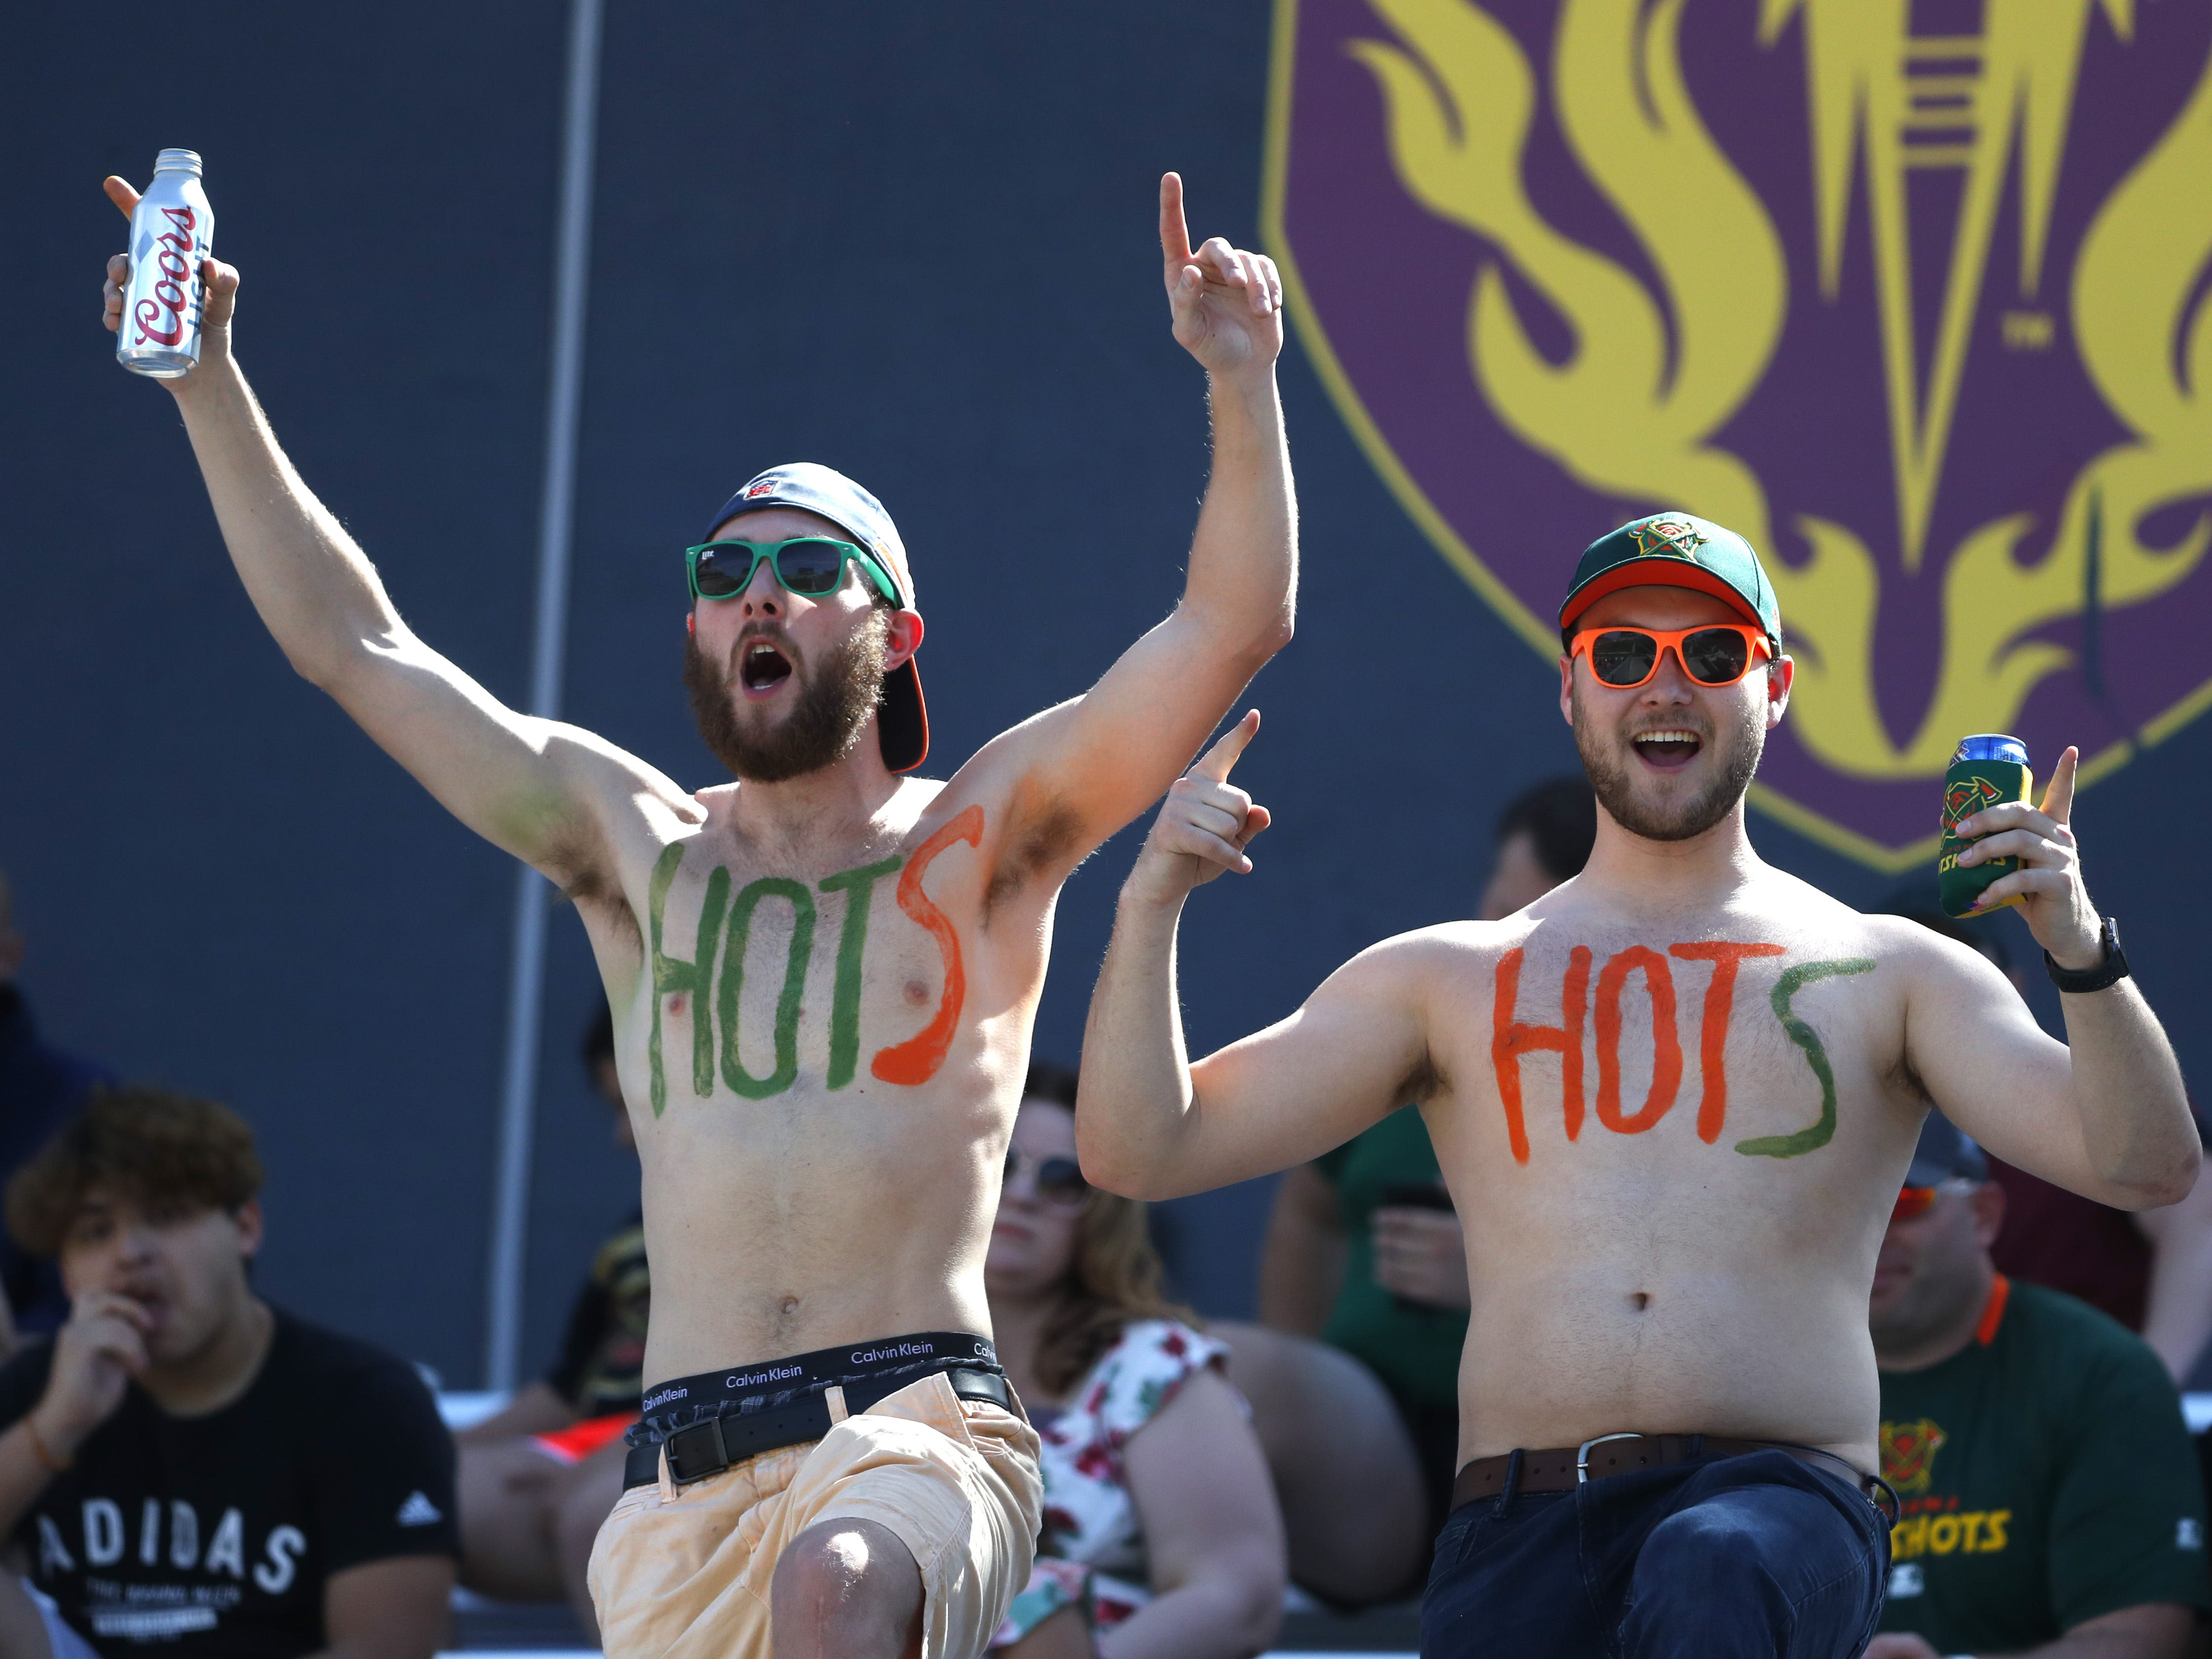 Hotshots fans celebrate a defensive stop against the Fleet during the second half at Sun Devil Stadium in Tempe, Ariz. on March 24, 2019.